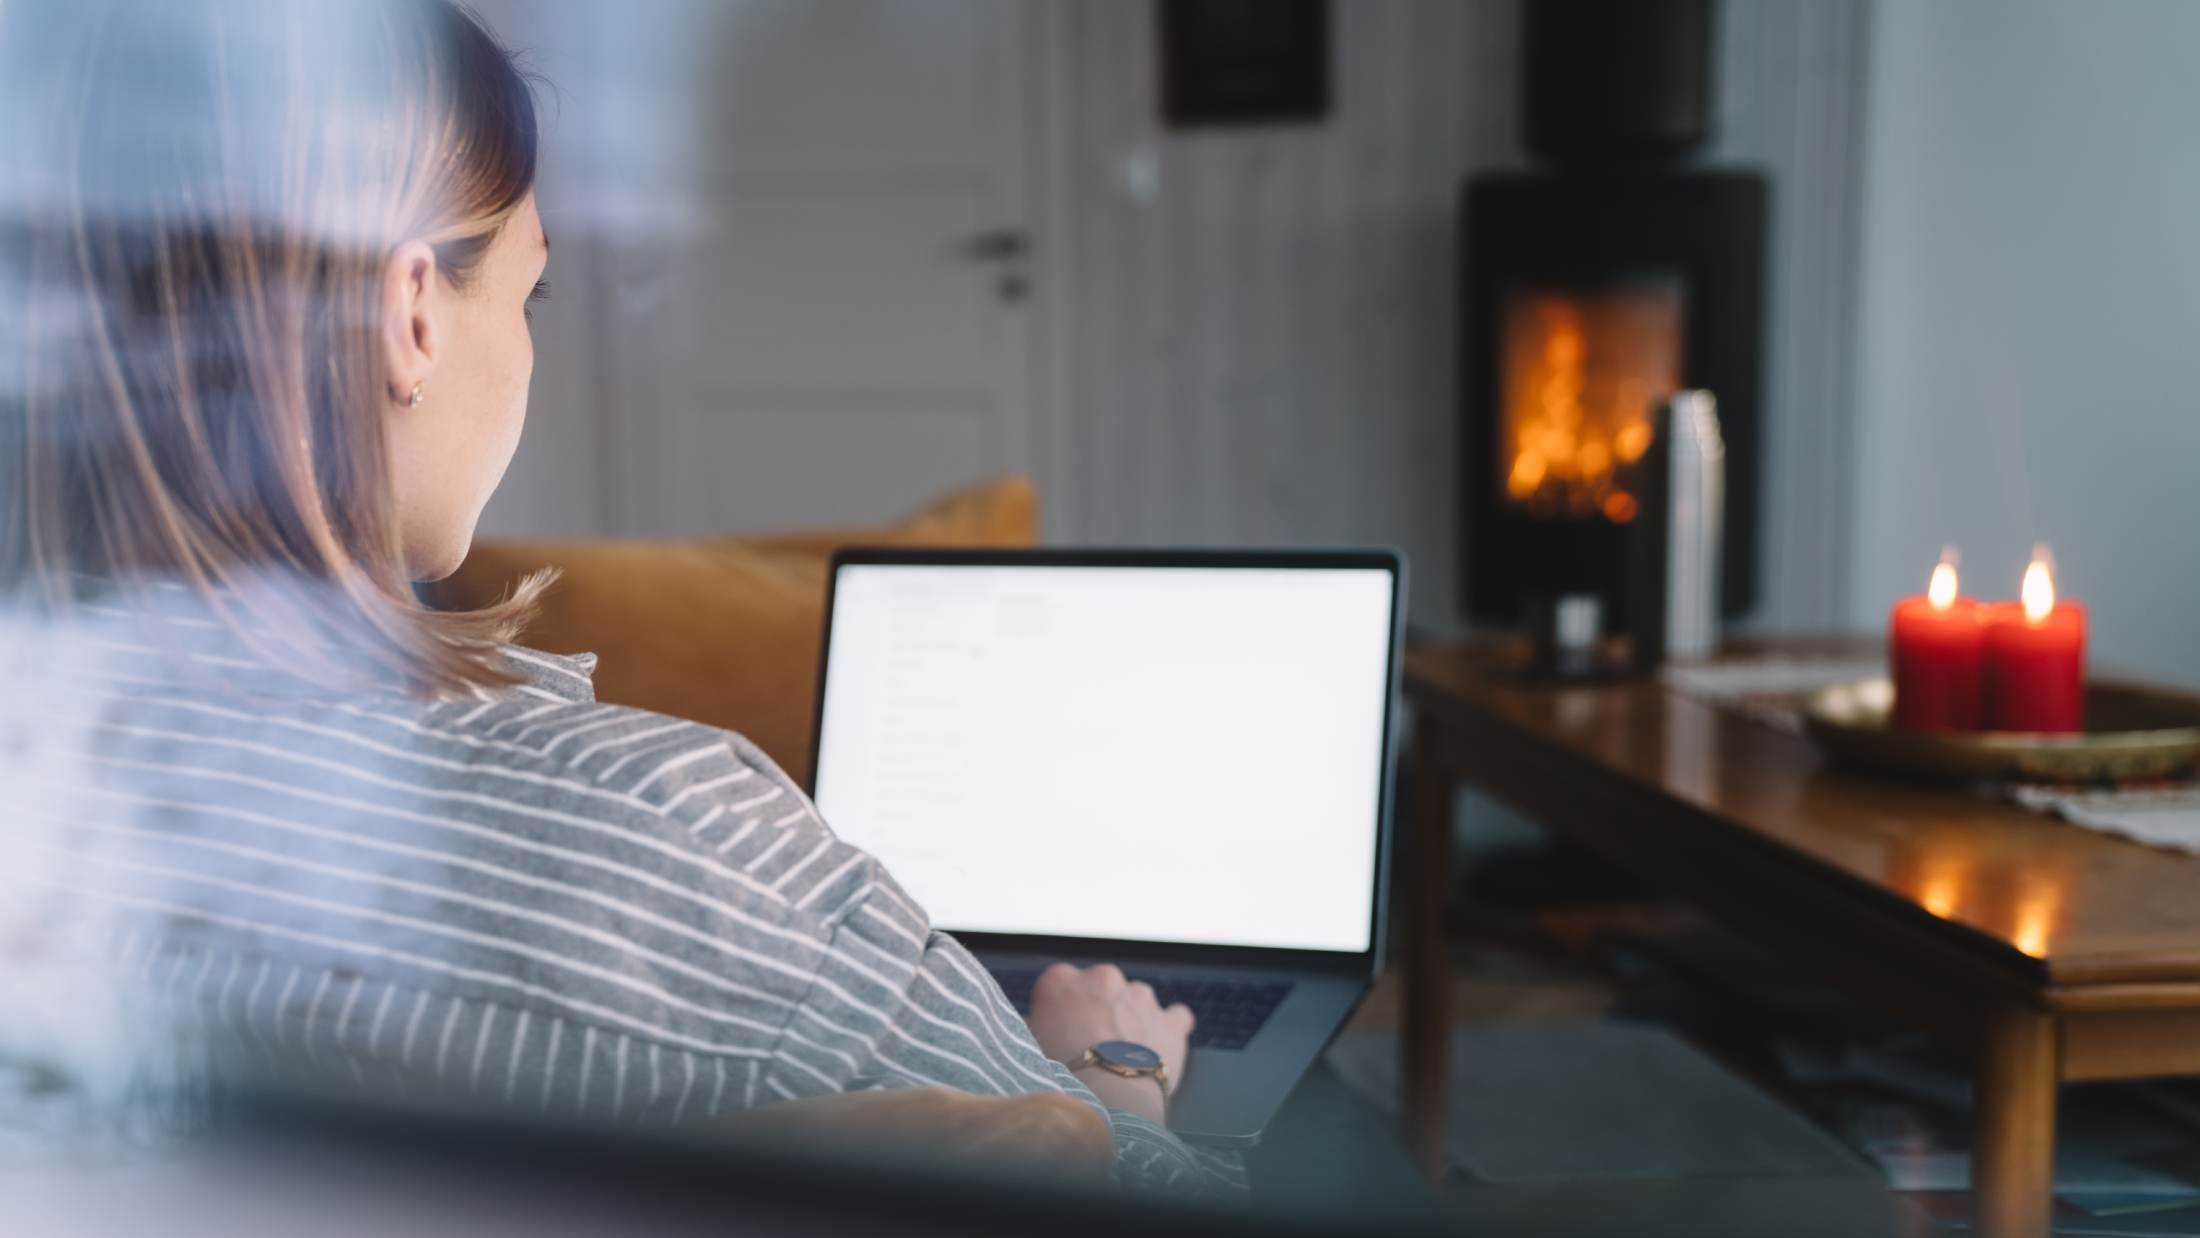 Woman working on laptop in front of open fire